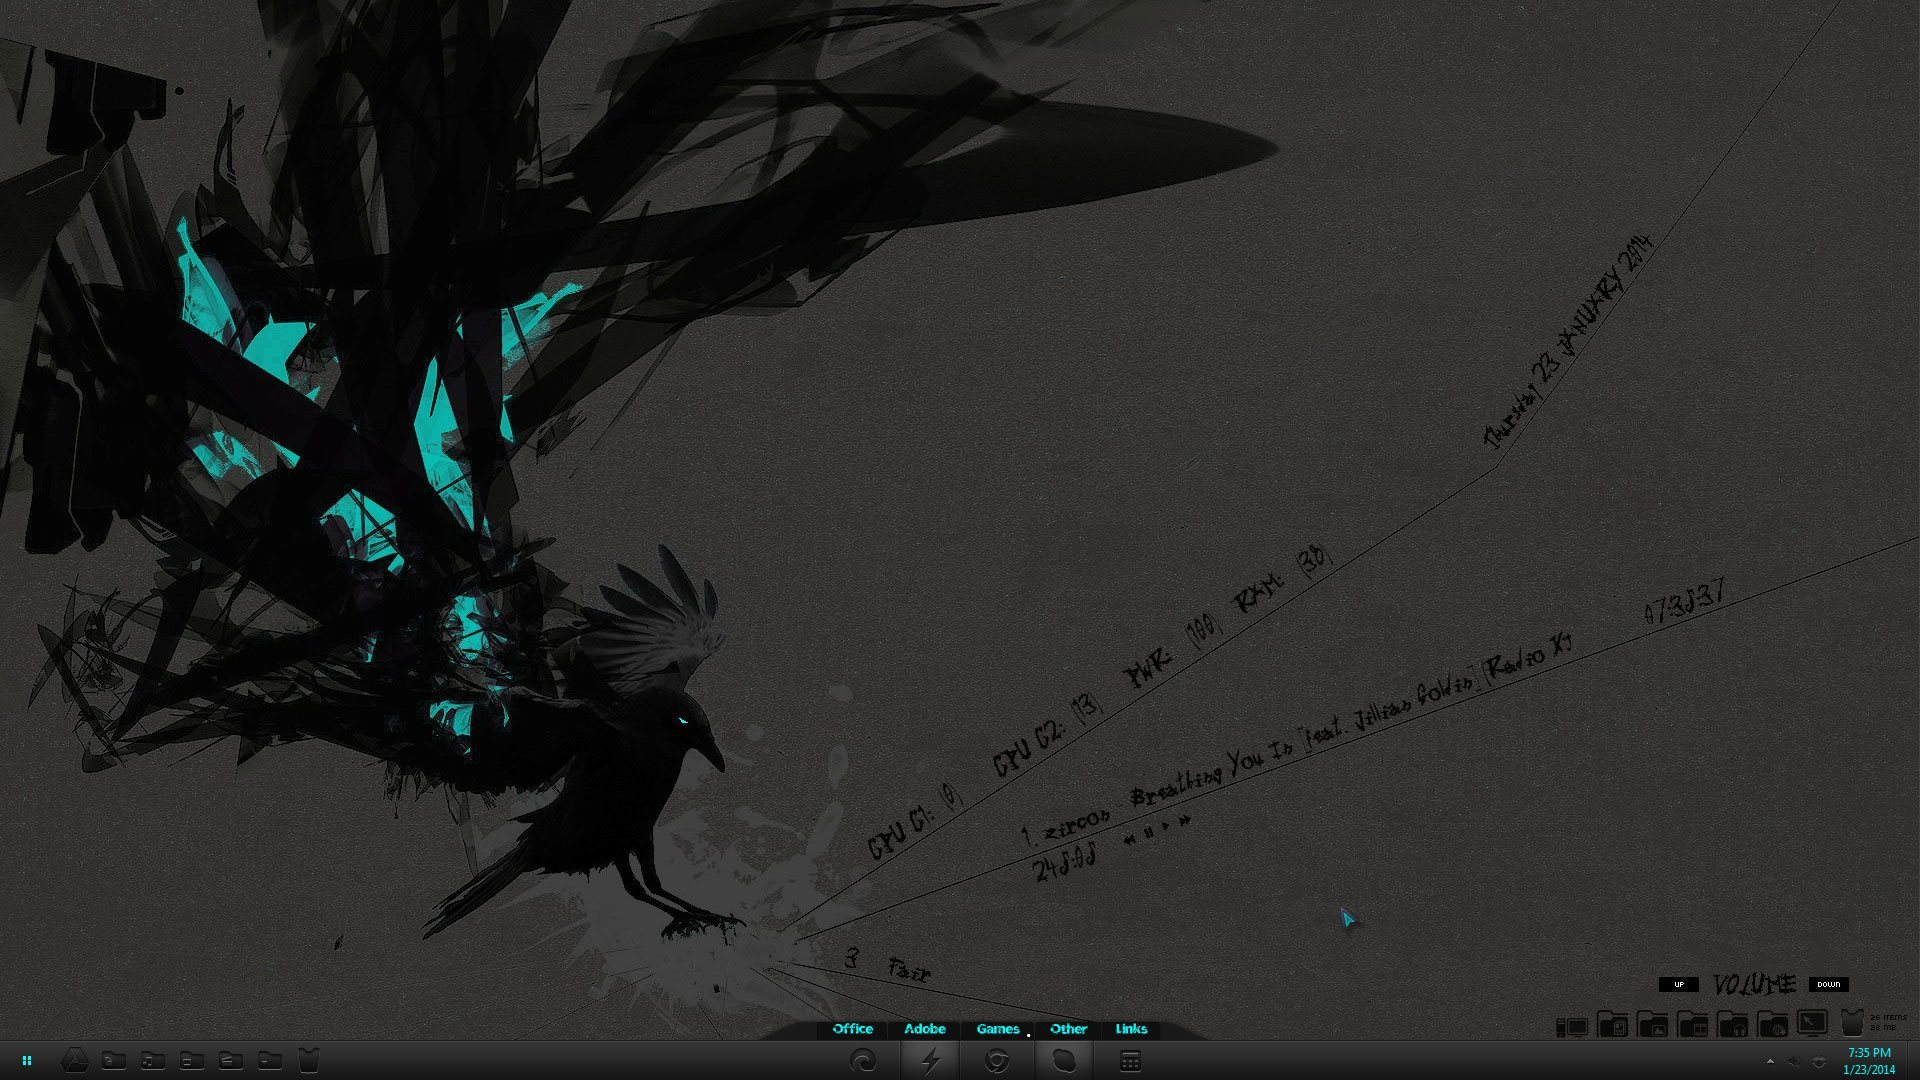 blue raven full desktop